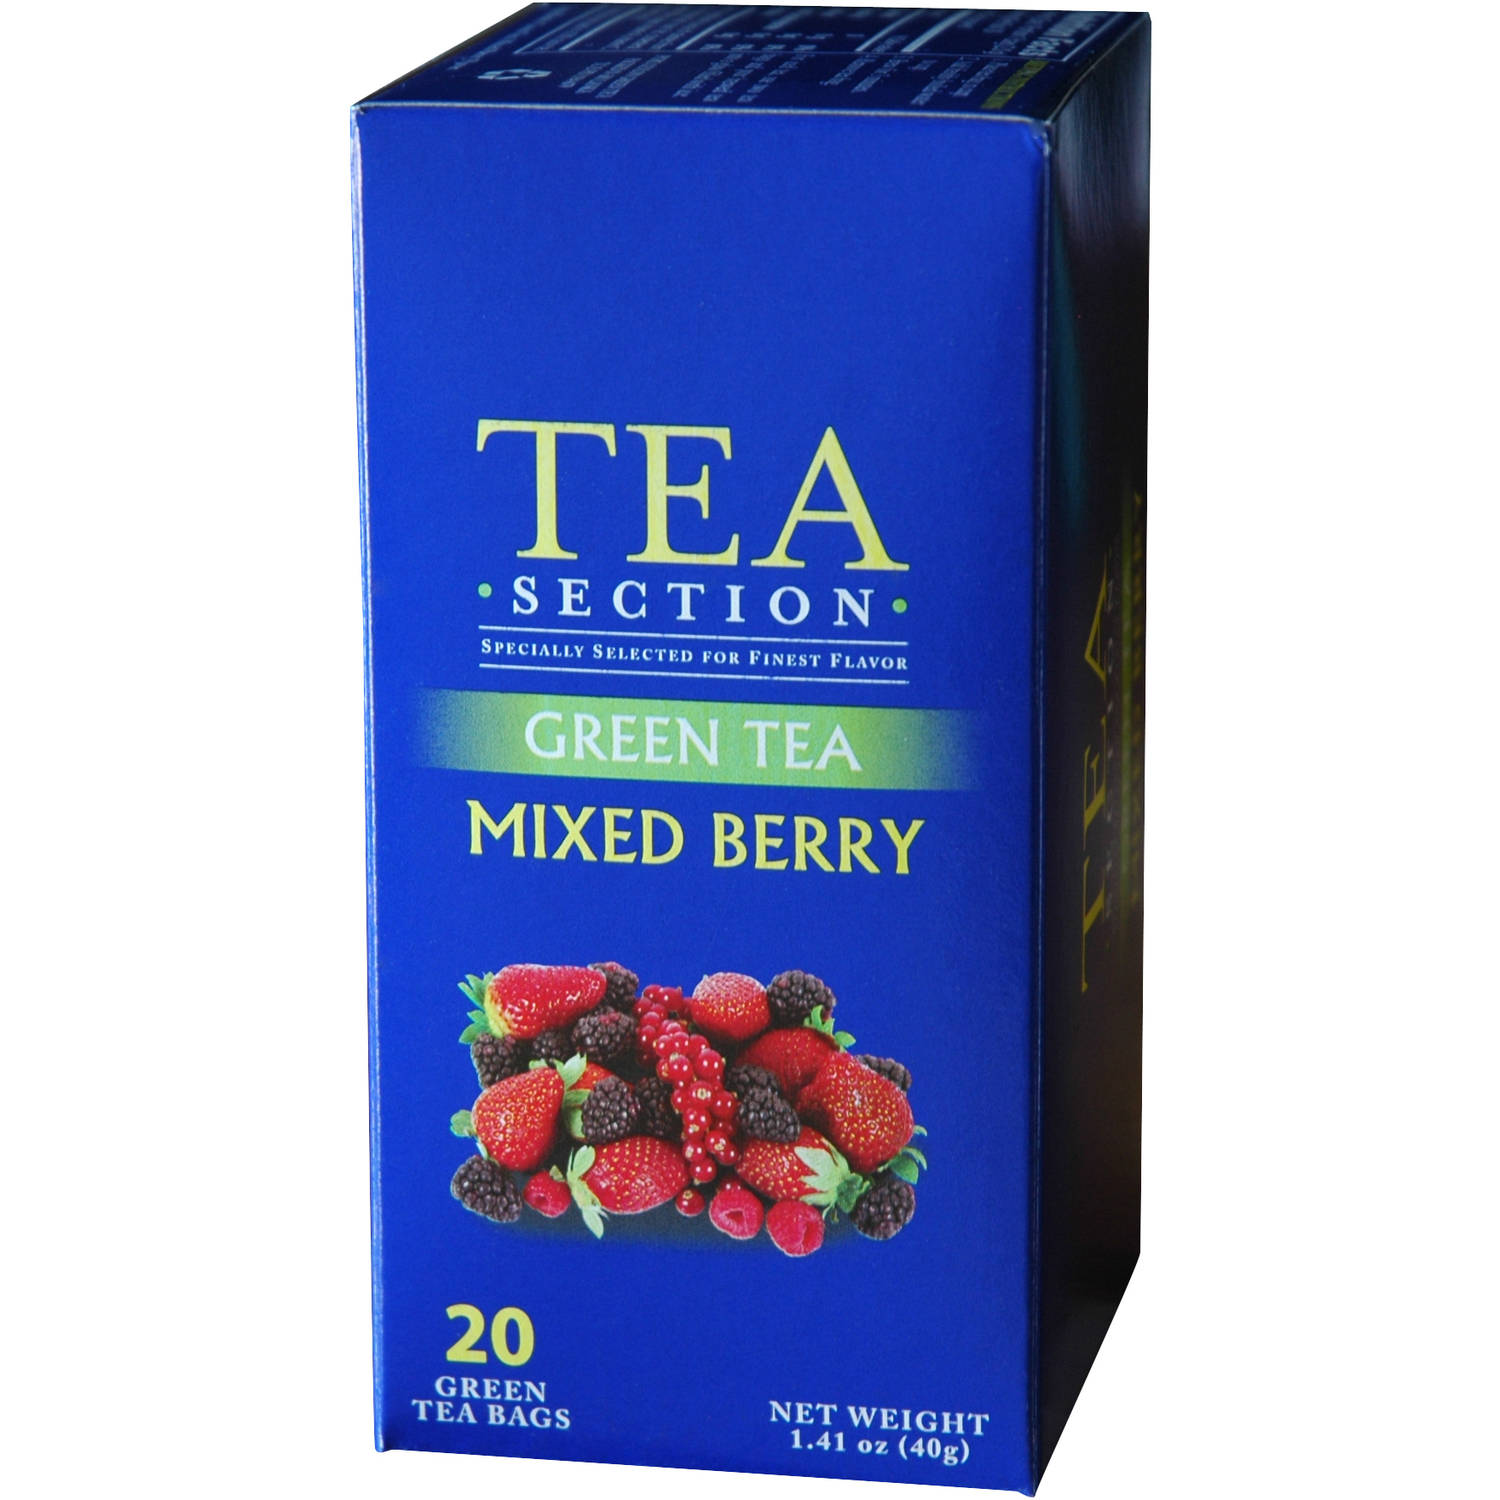 Tea Section Mixed Berry Green Tea Bags, 20 count, 1.41 oz